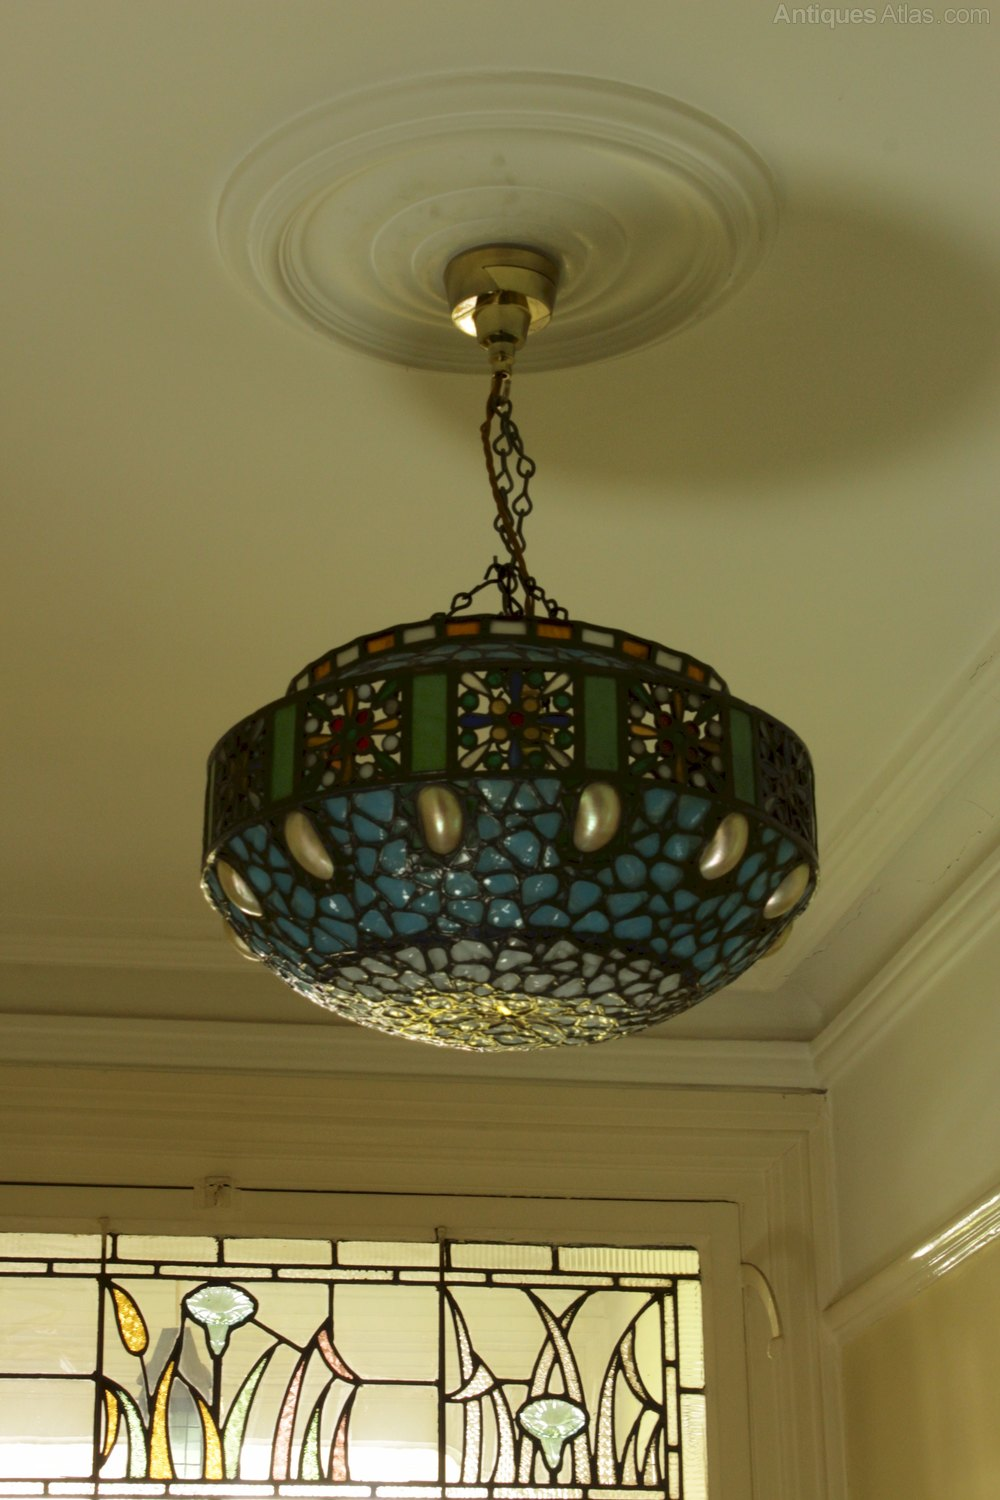 Antiques Atlas Stunning Hanging Lamp Shade With Shells And Glass